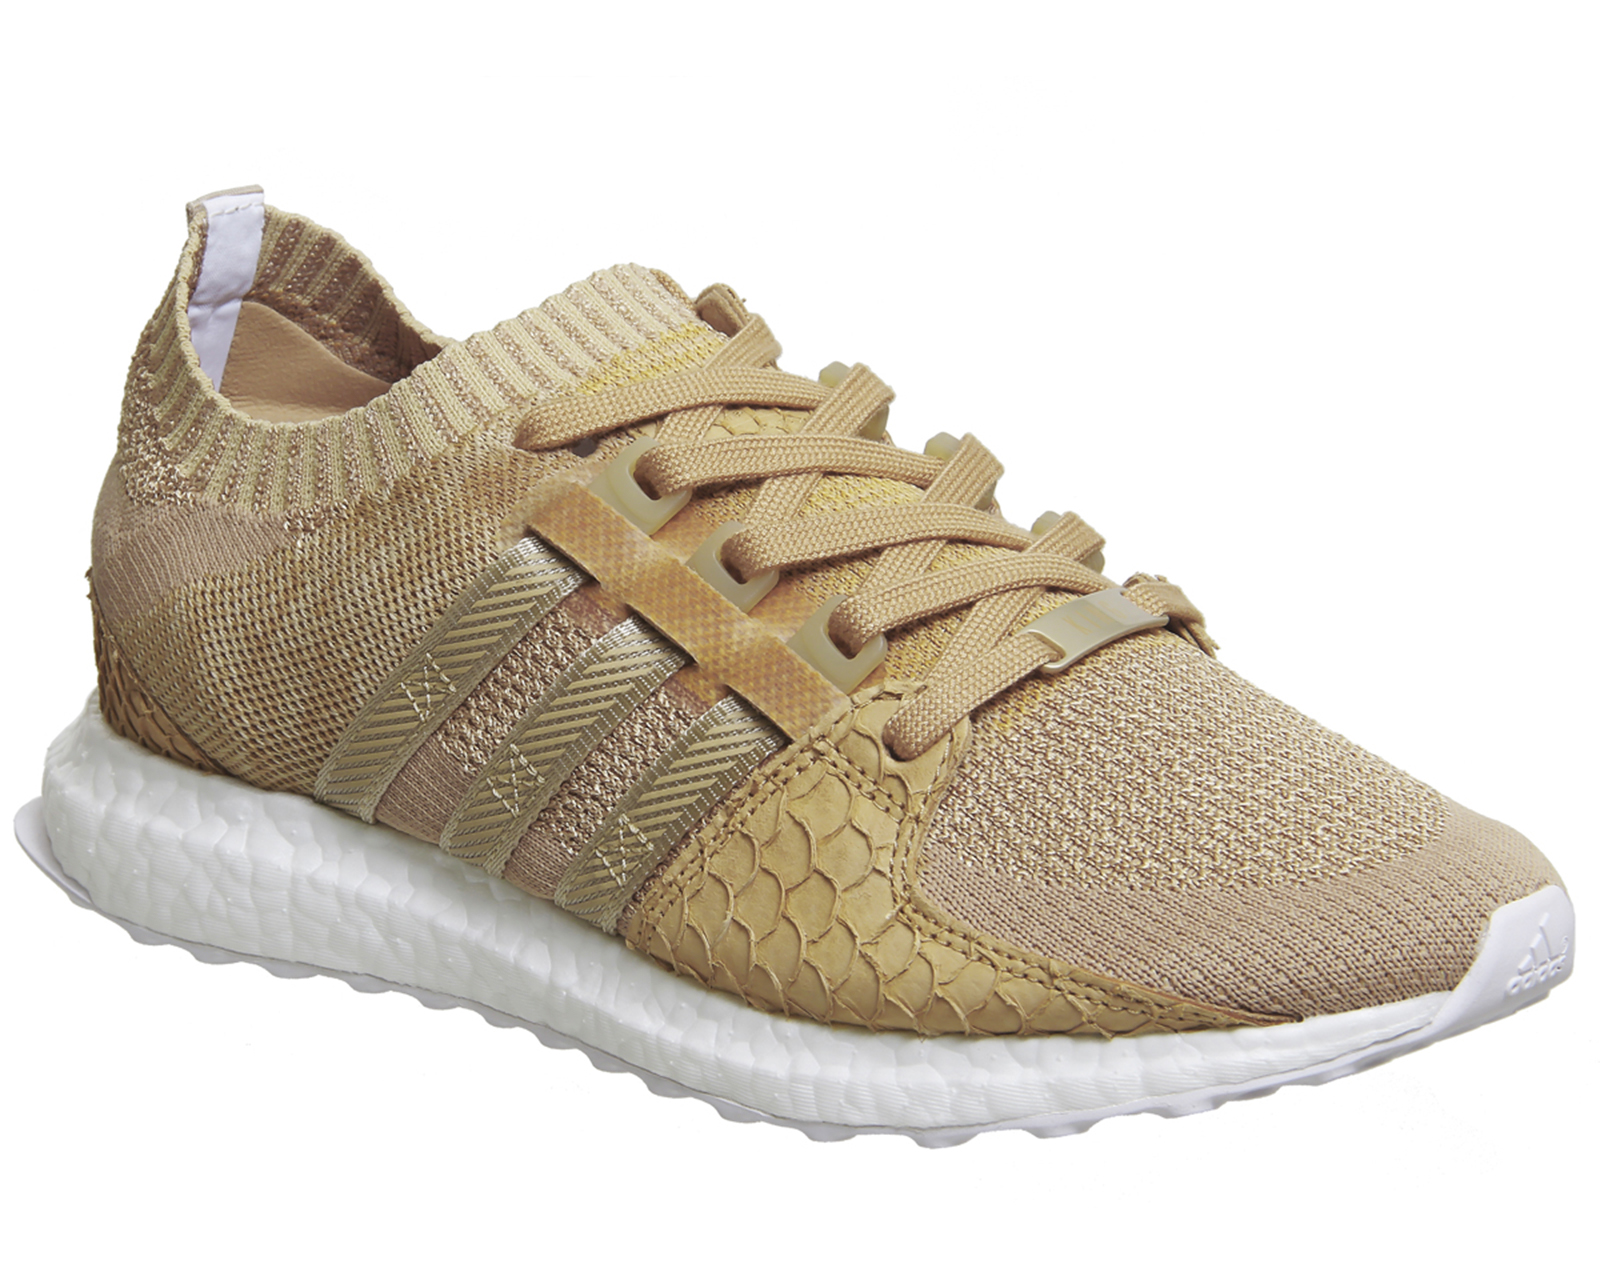 0657dc436adb WÄCHTER Adidas Eqt Support Ultra DWELE T BROWN BAG Trainer Schuhe